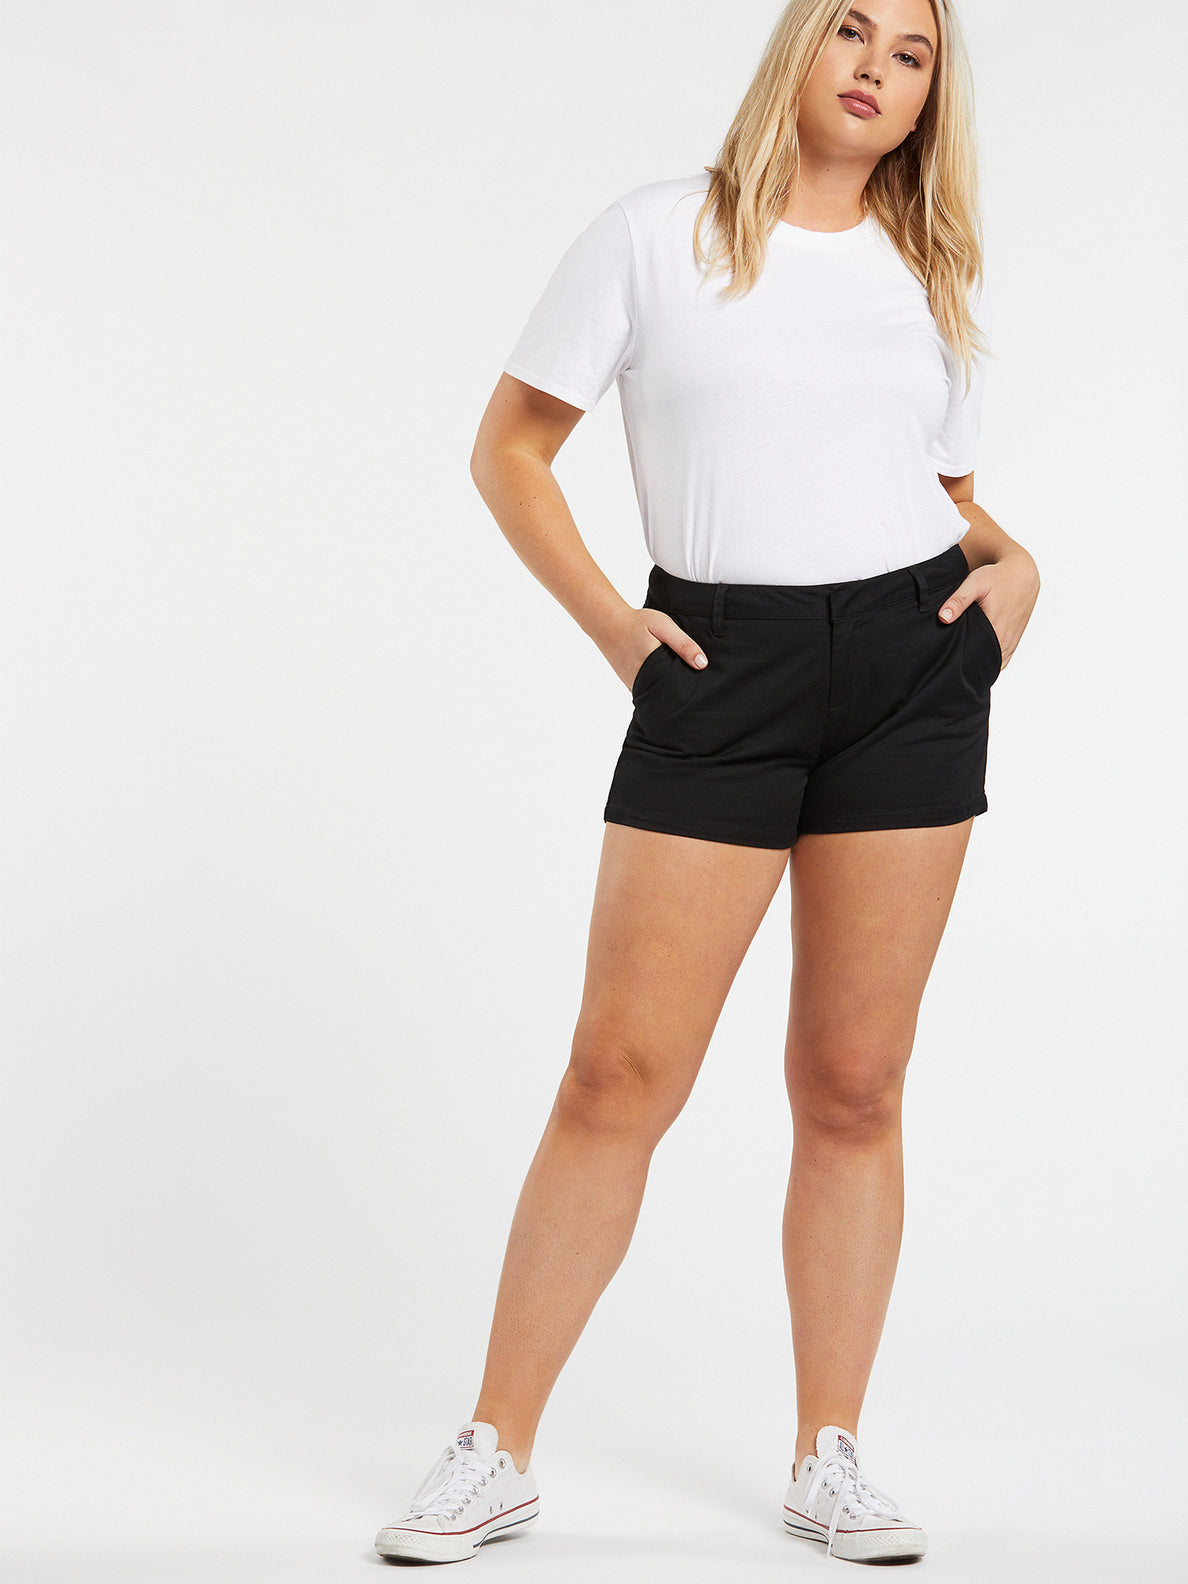 Frochickie Shorts - Black (B0911800_BLK) [3]